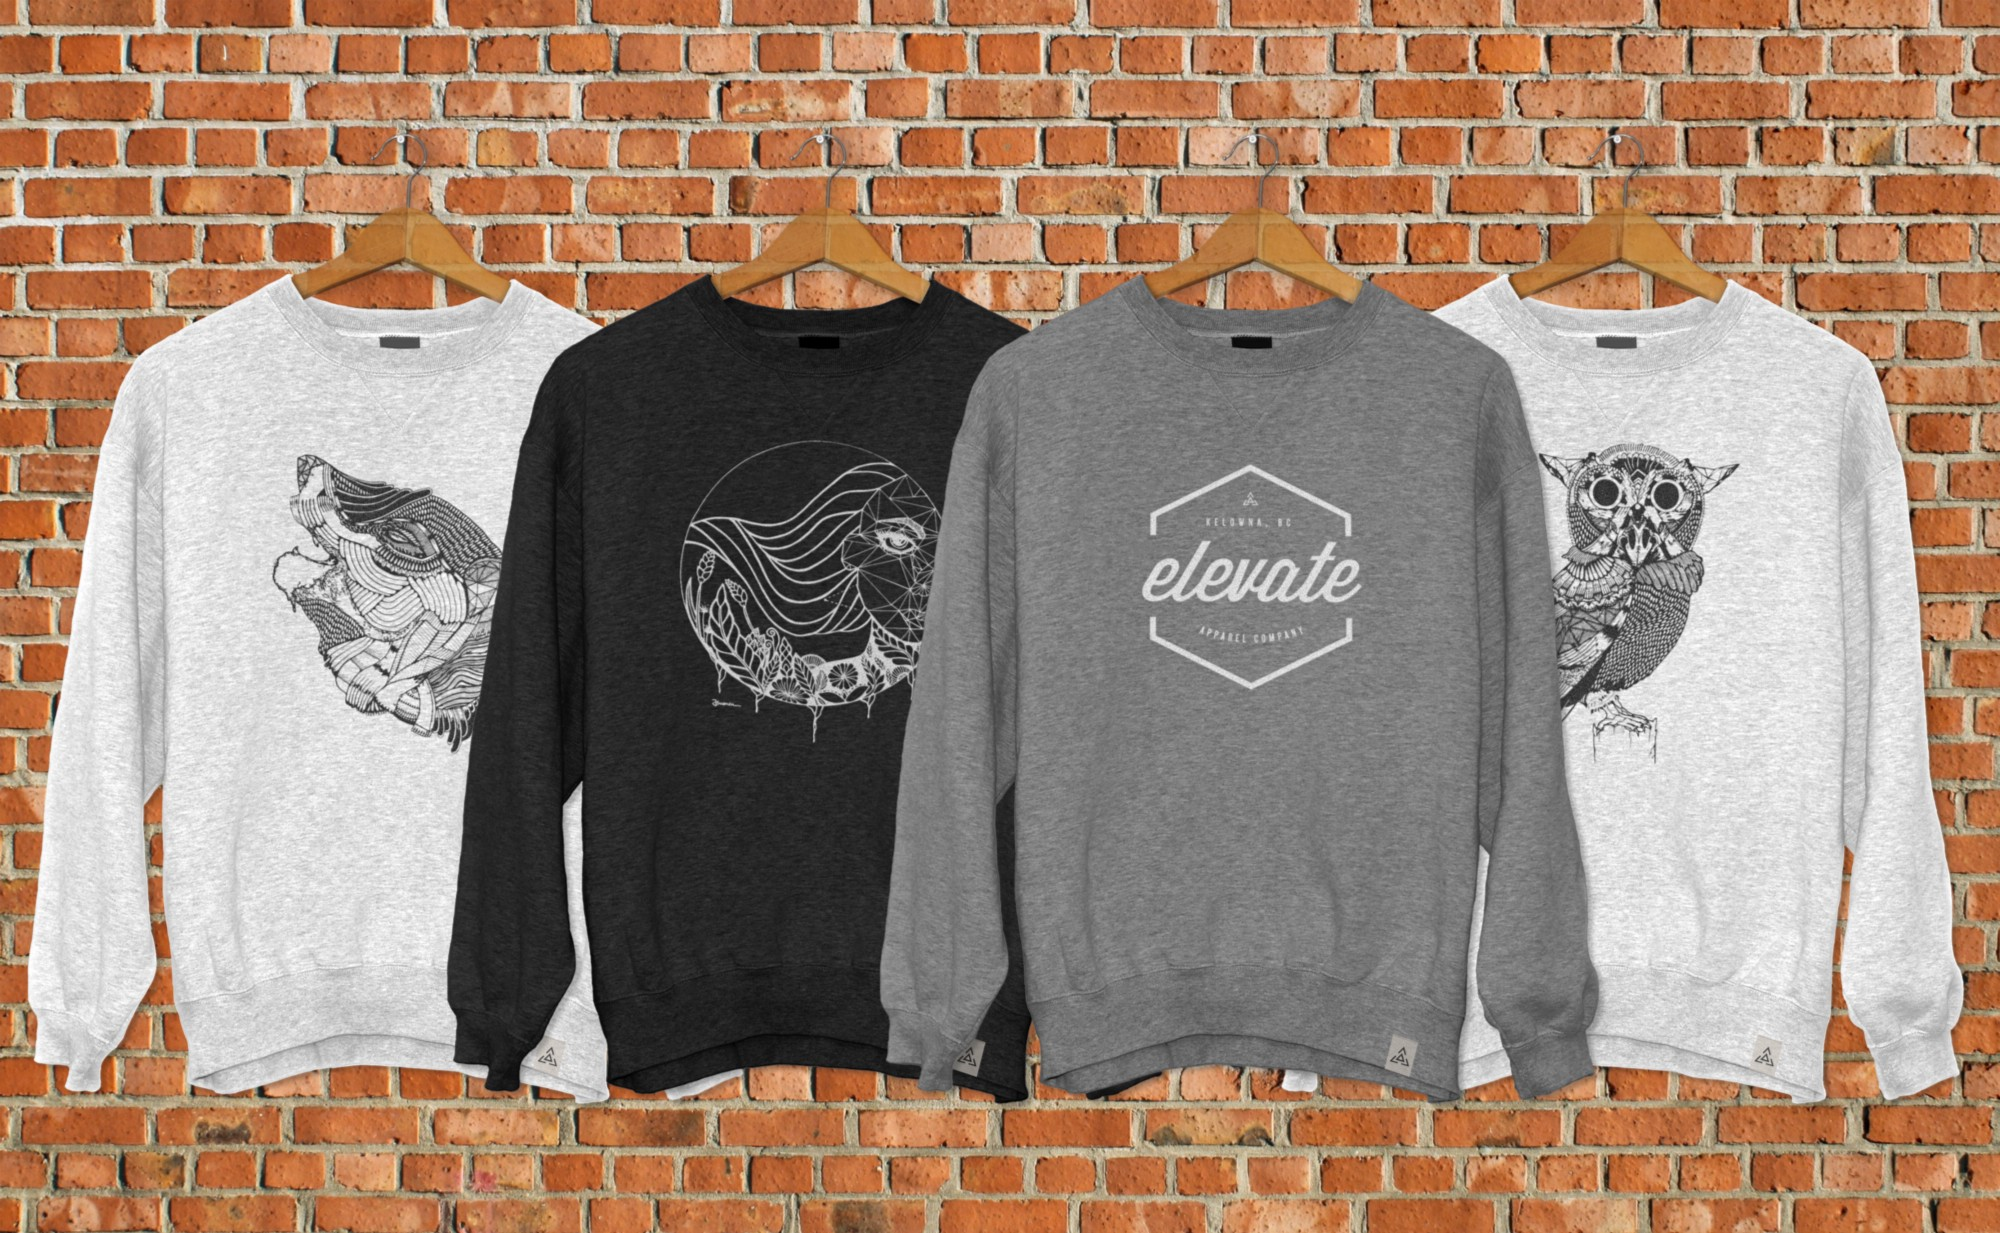 Elevate Apparel Company